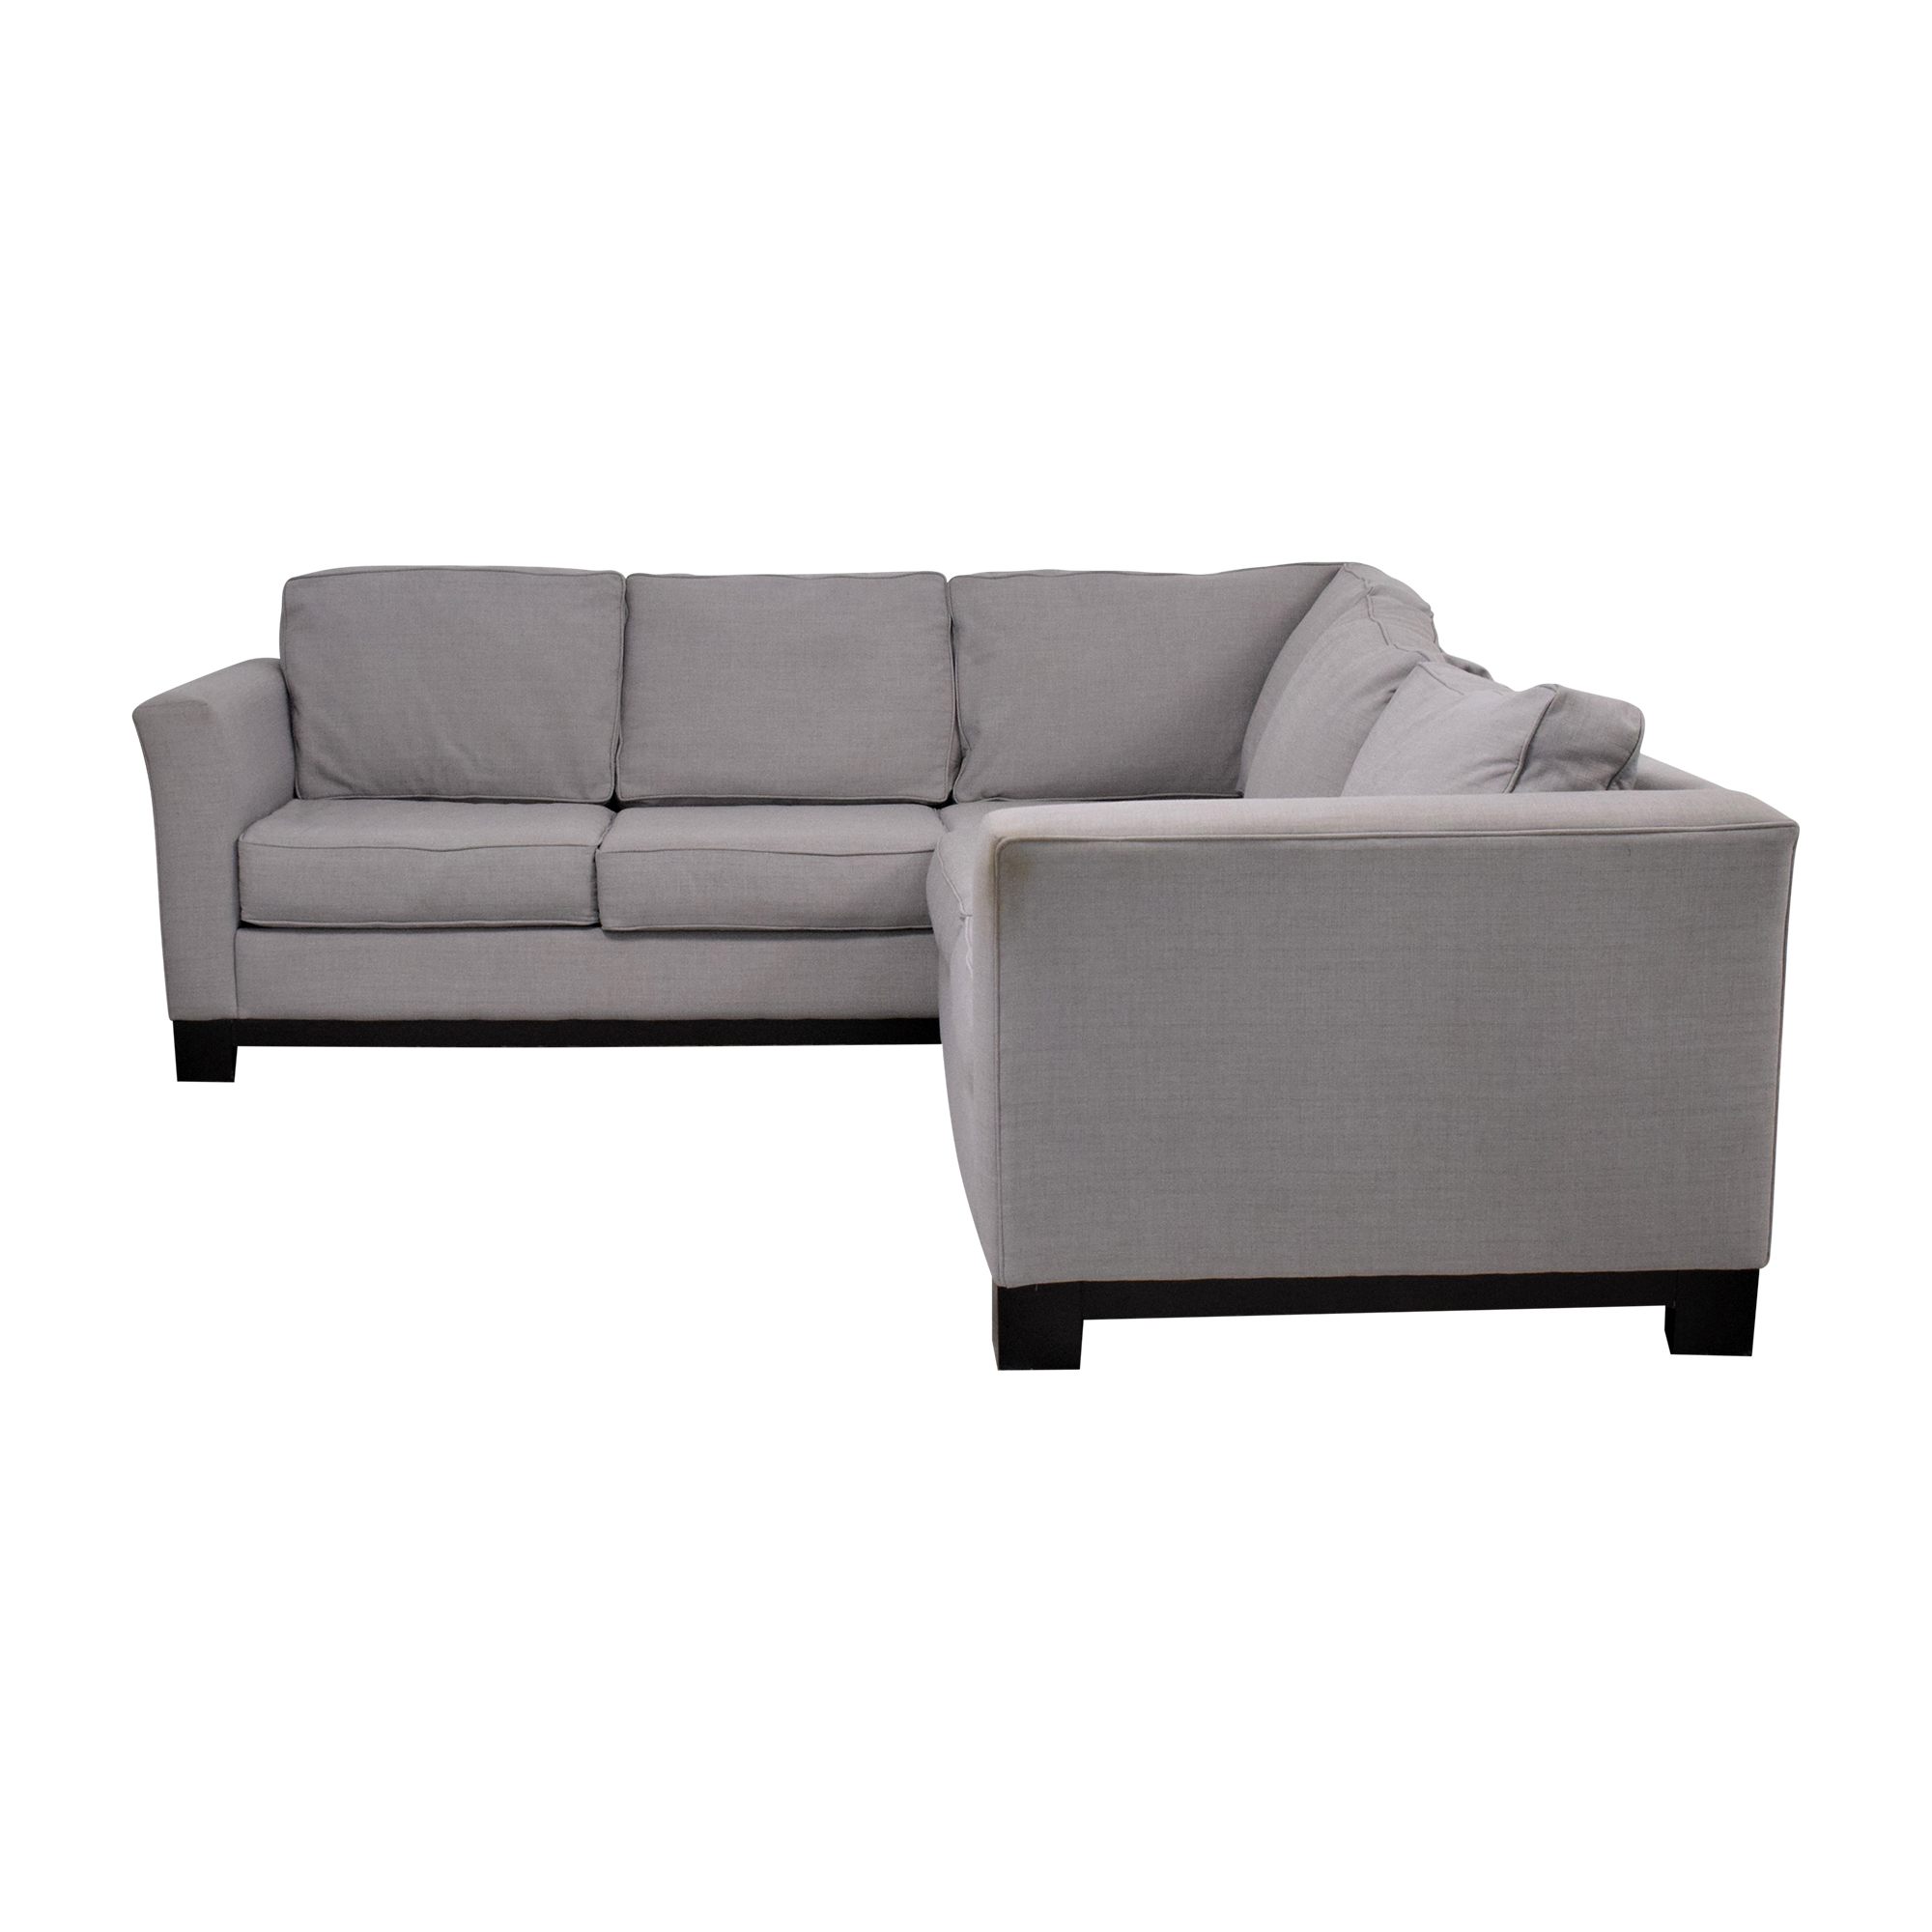 Macy's Macy's Elliot 2pc Sleeper Sofa Sectional price